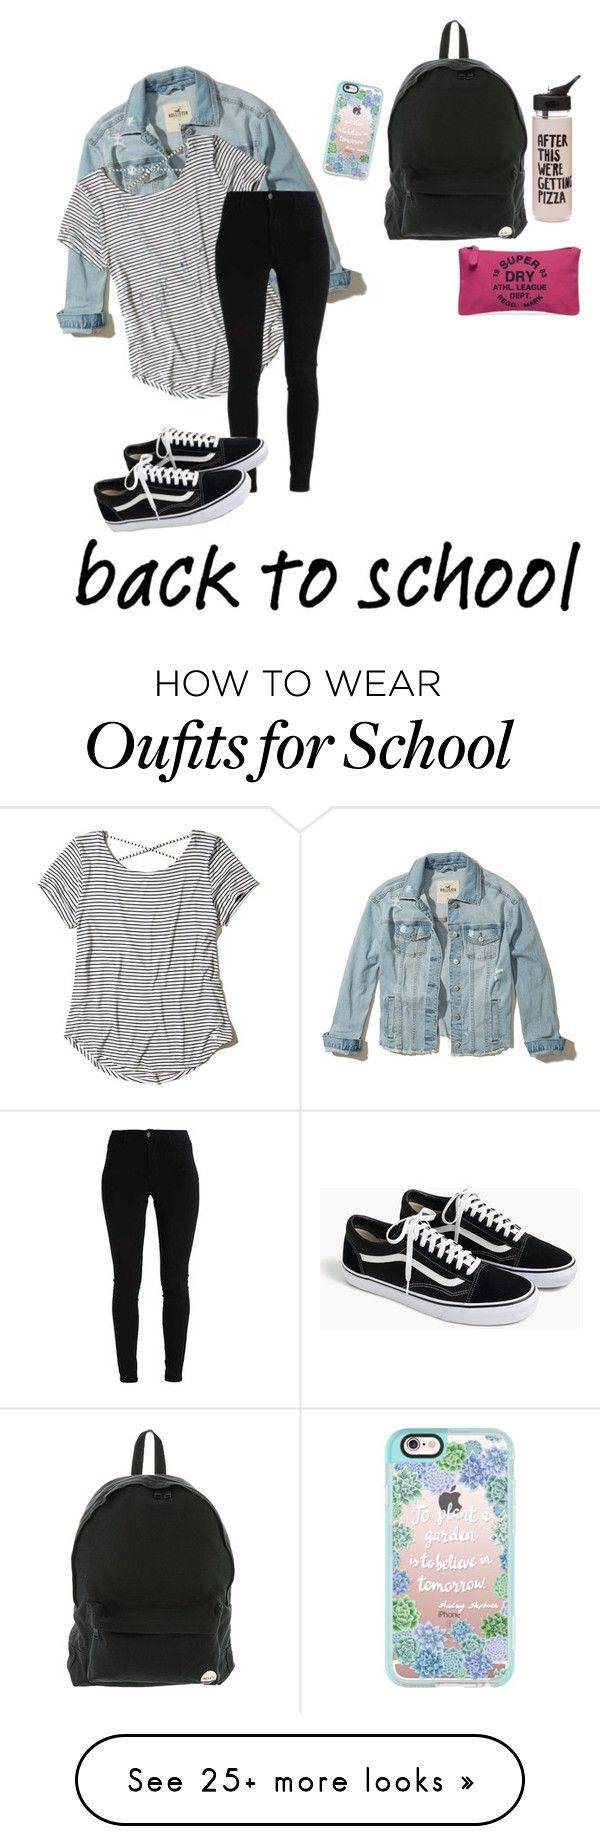 """""""school"""" by henriesophie on Polyvore featuring Hollister Co., J.Crew, Roxy, ban.do, Superdry and Casetify"""